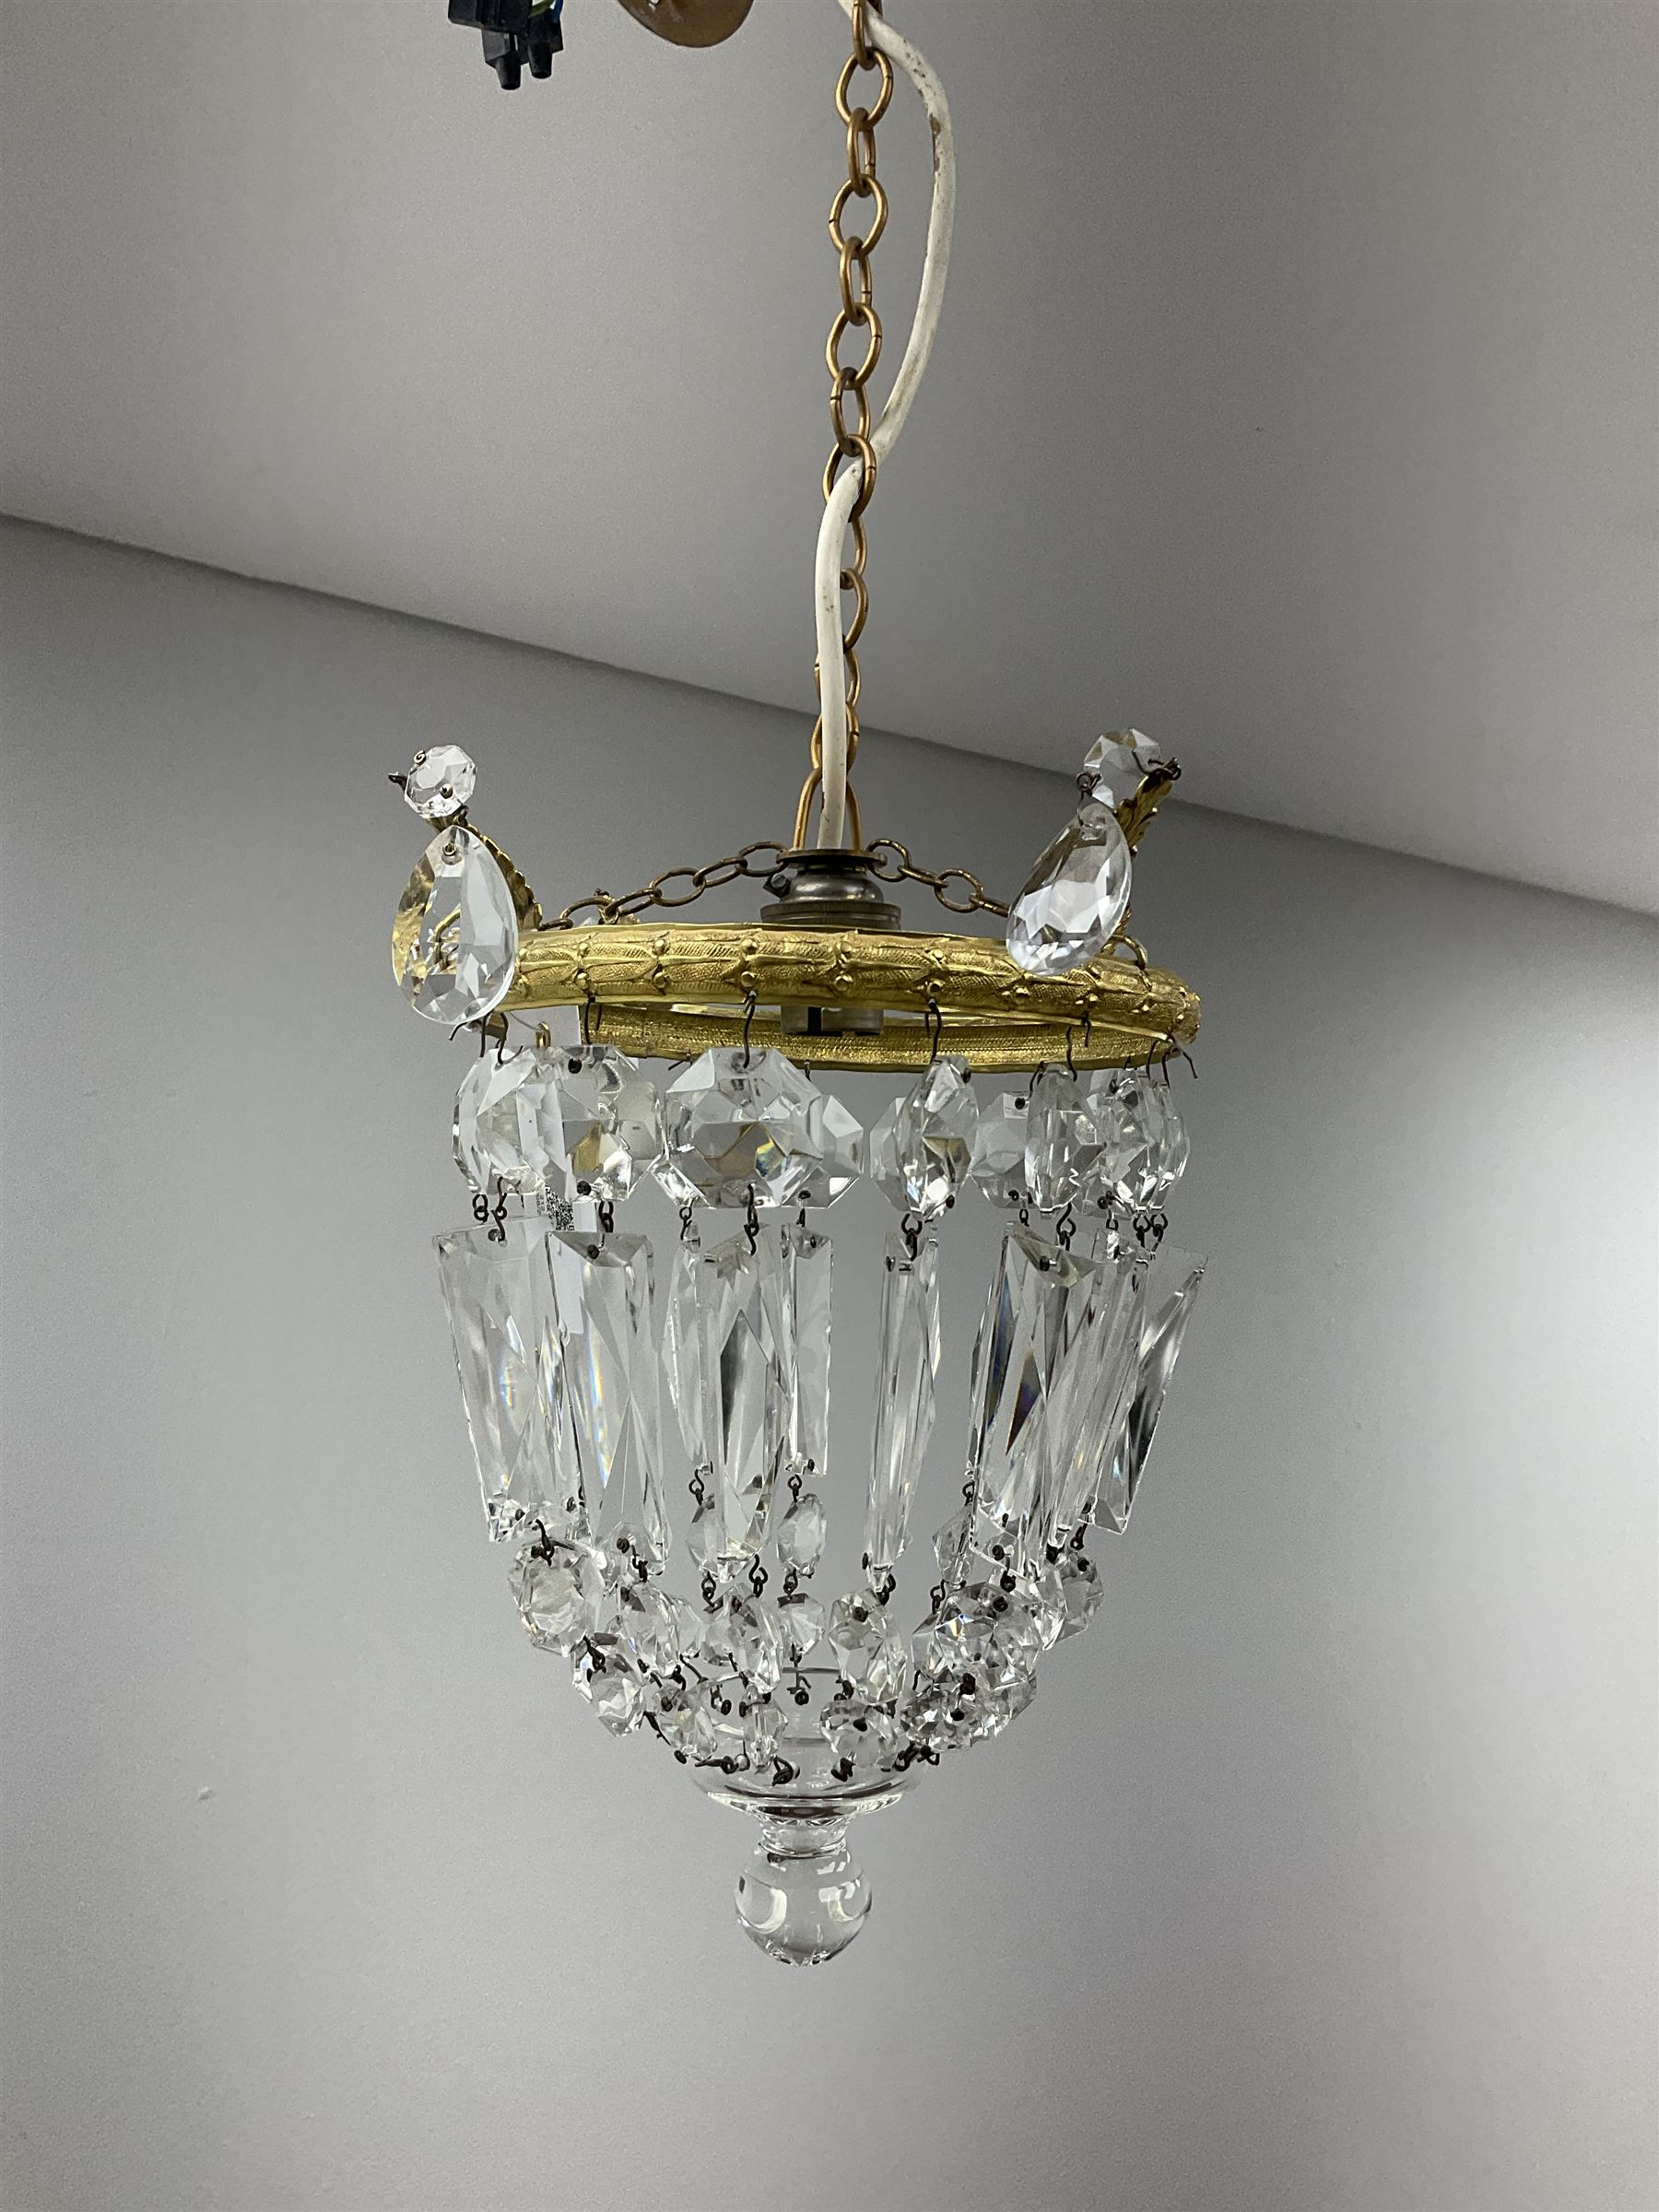 A pair of cut glass bag chandeliers with gilt metal mounts of clear glass drops - Image 2 of 3